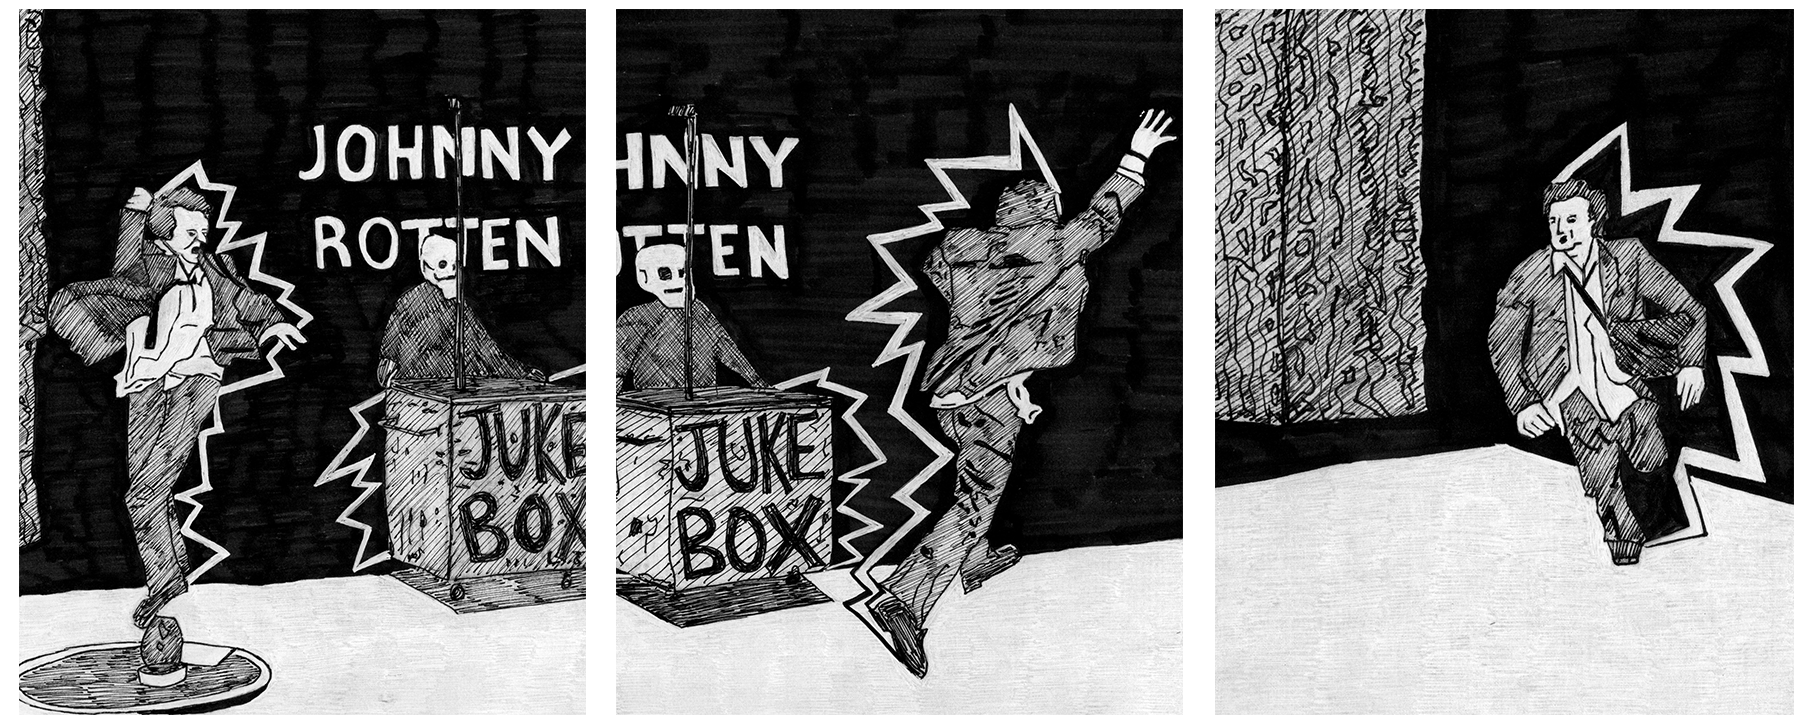 3 frames of Johnny Rotten's audition